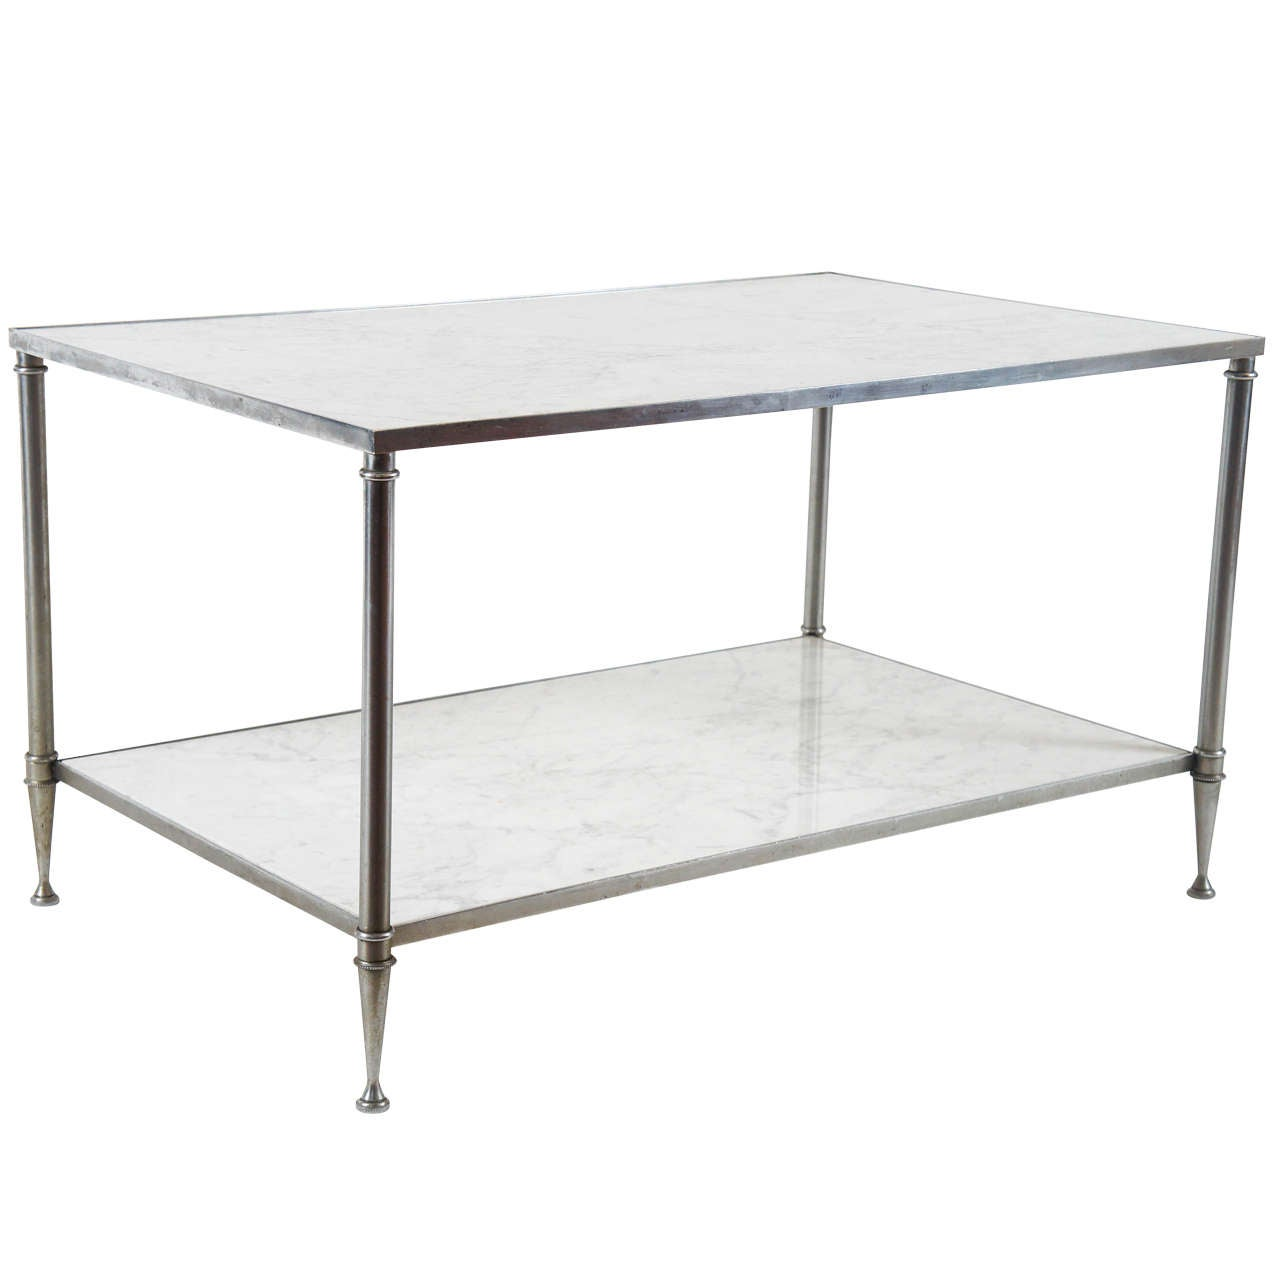 Jansen Coffee Table Maison Jansen Two Tier Carrara Marble And Steel Coffee Table For